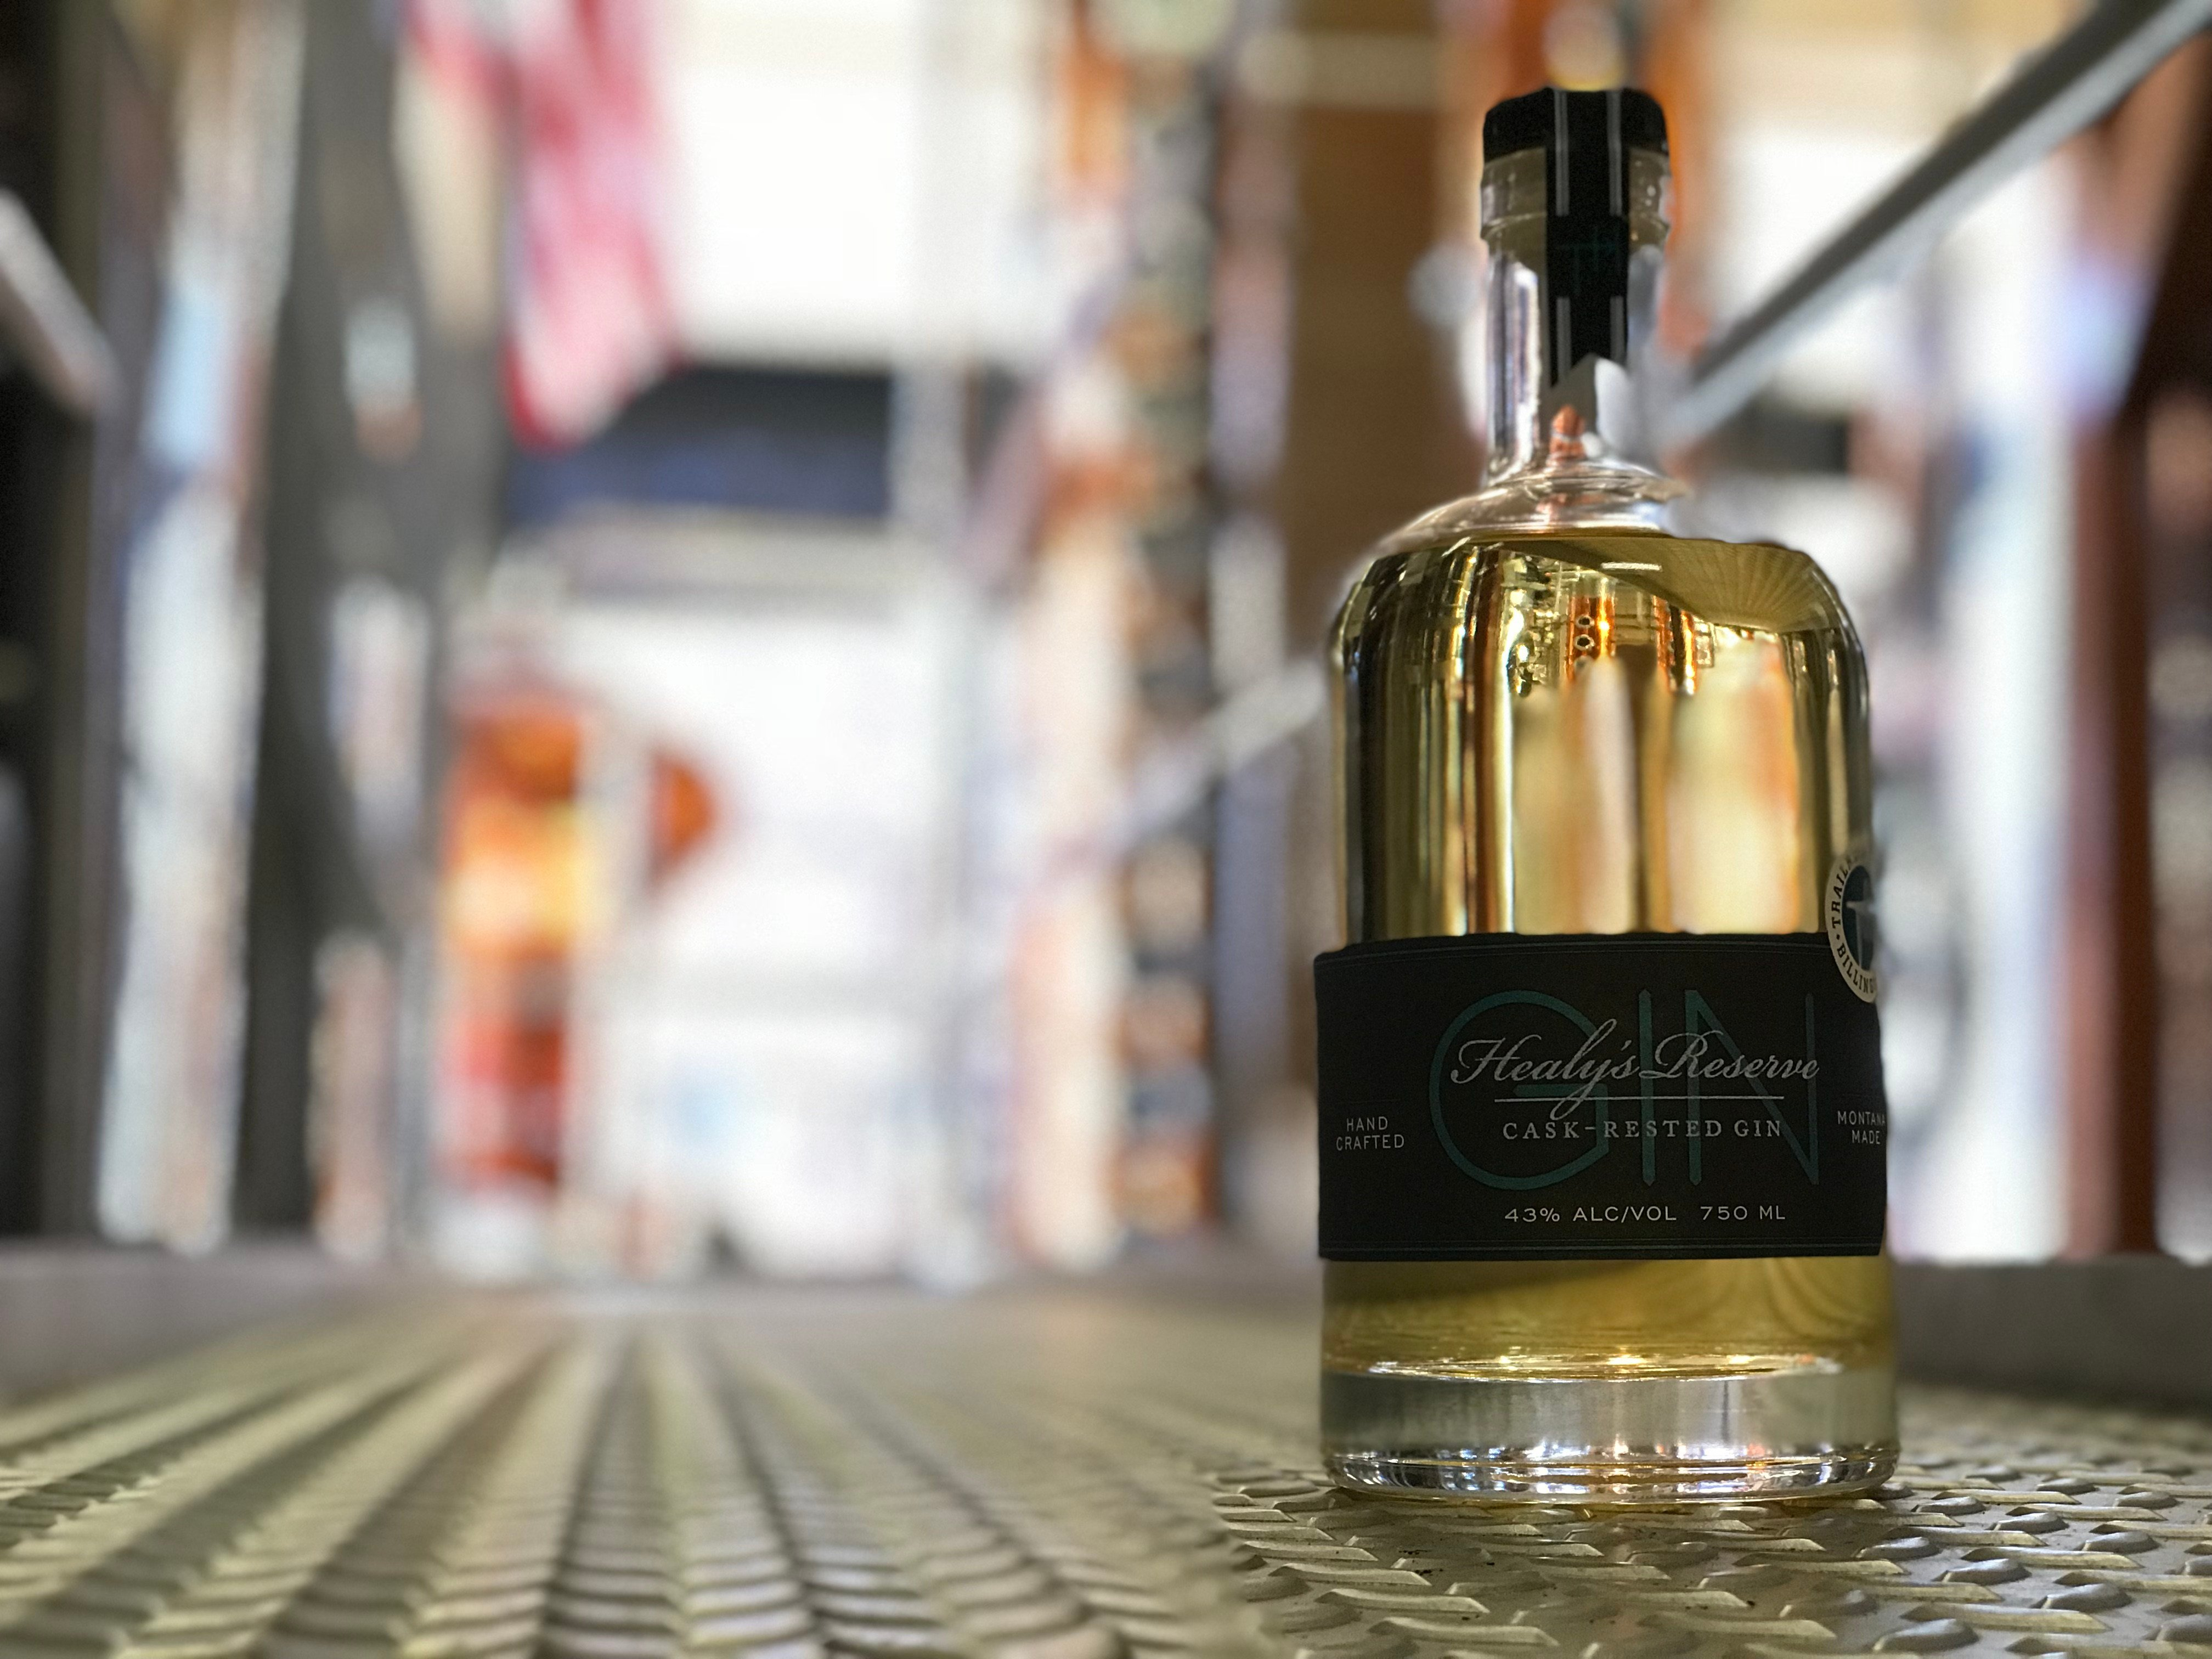 Making hand crafted spirits is a labor of love for Casey McGowan, who opened Trailhead Spirits in January 2013.  (MTN News photo)